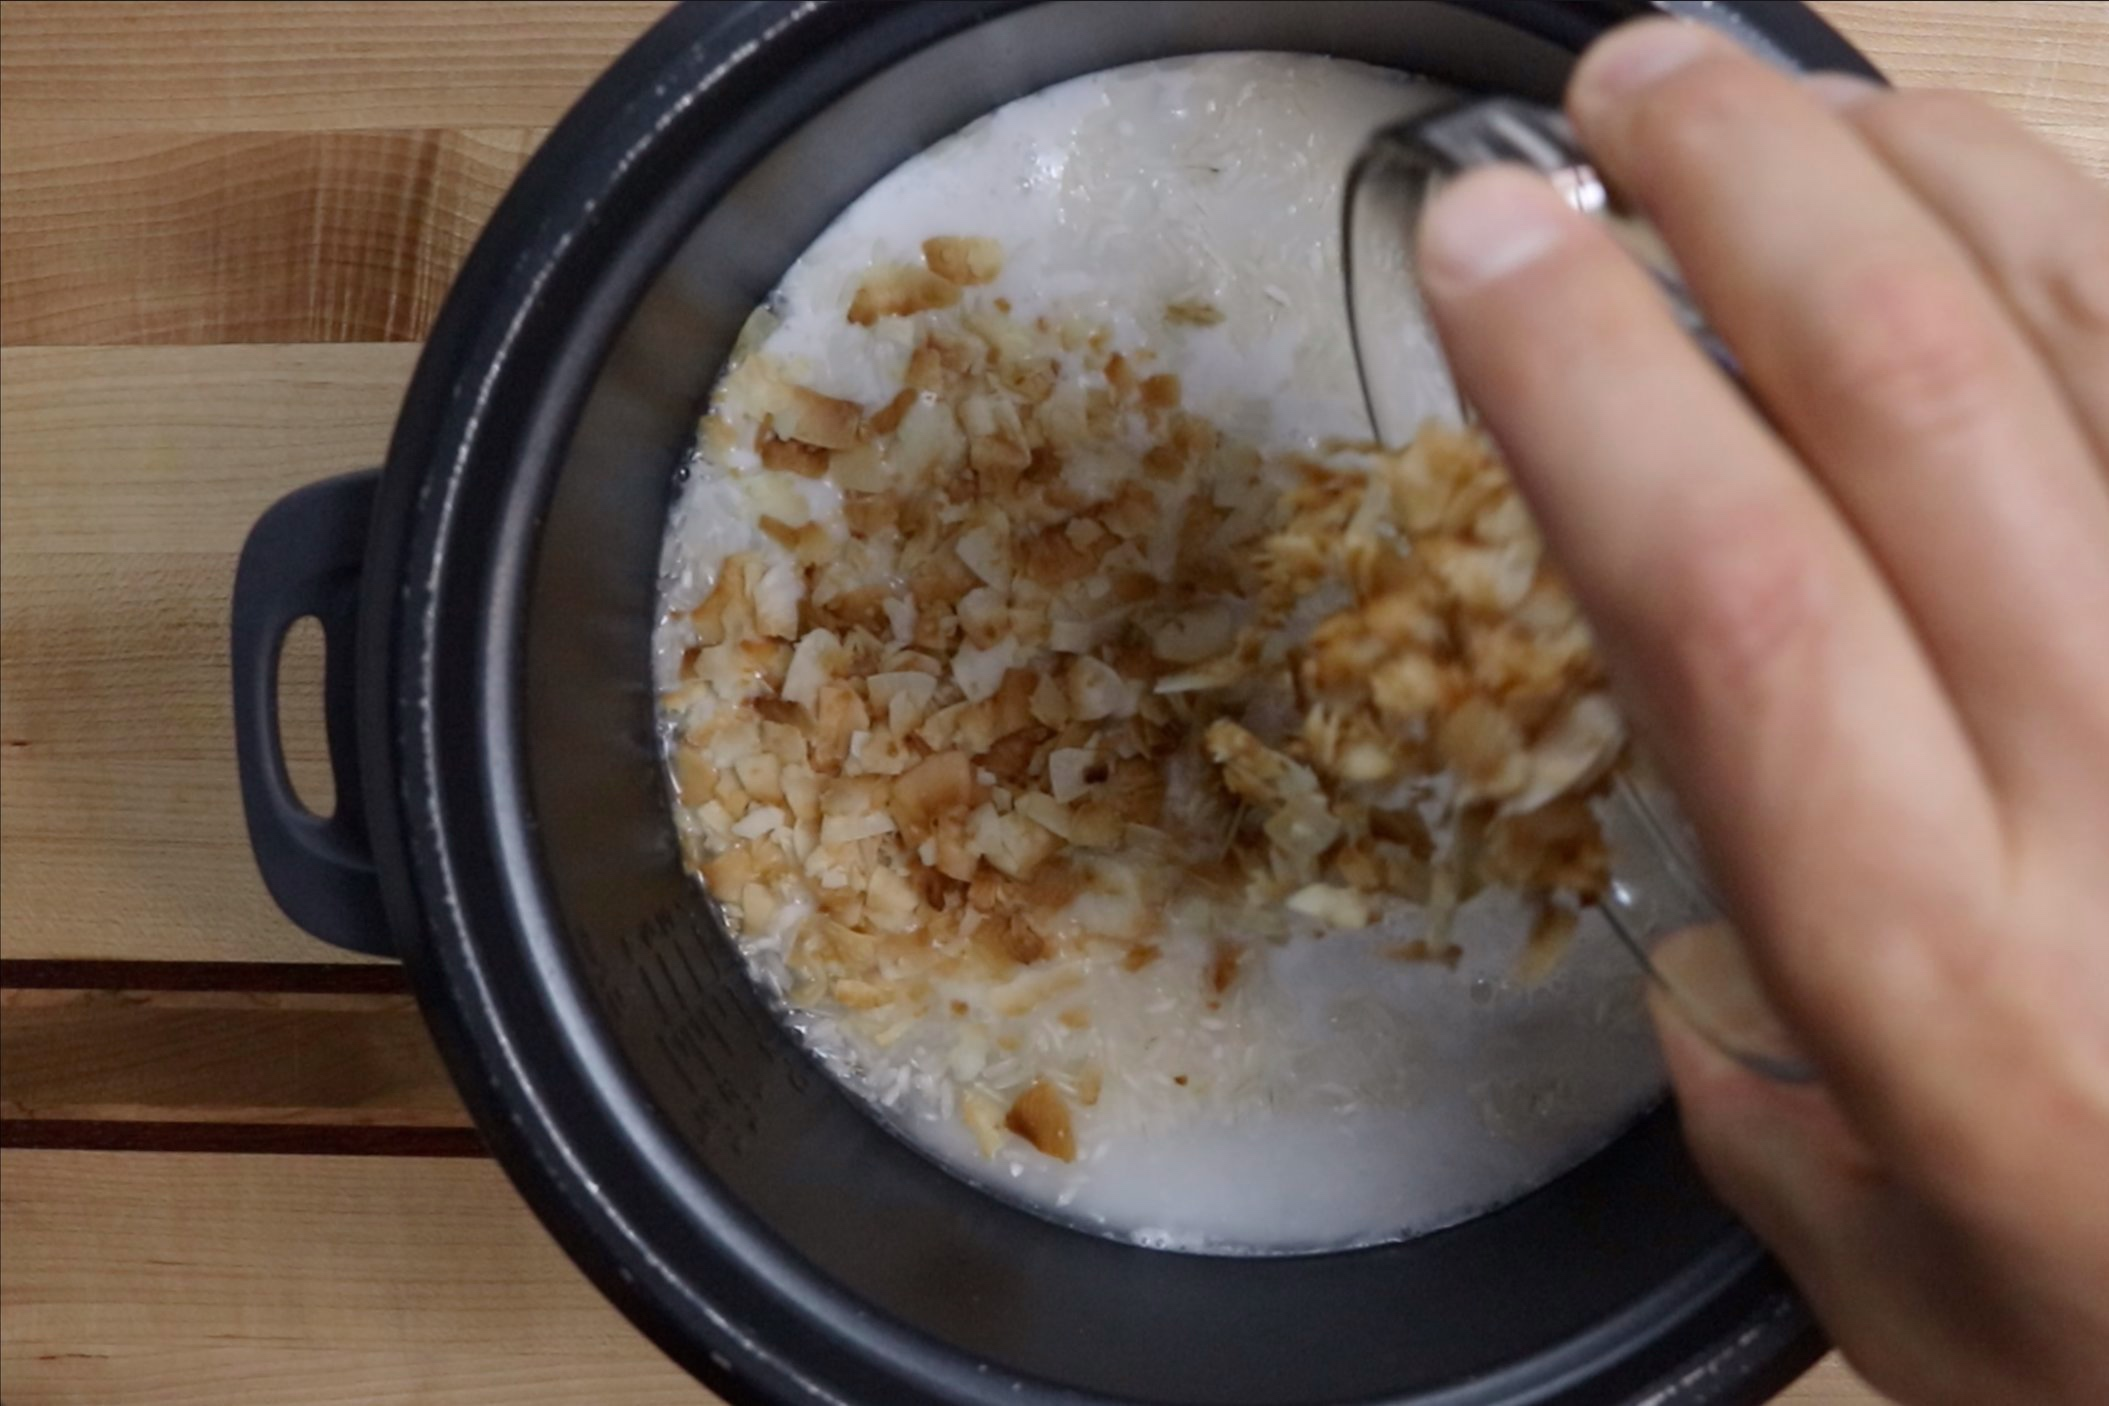 1. In a rice cooker, add the rice, coconut milk, pineapple juice, water, salt and toasted coconut. -